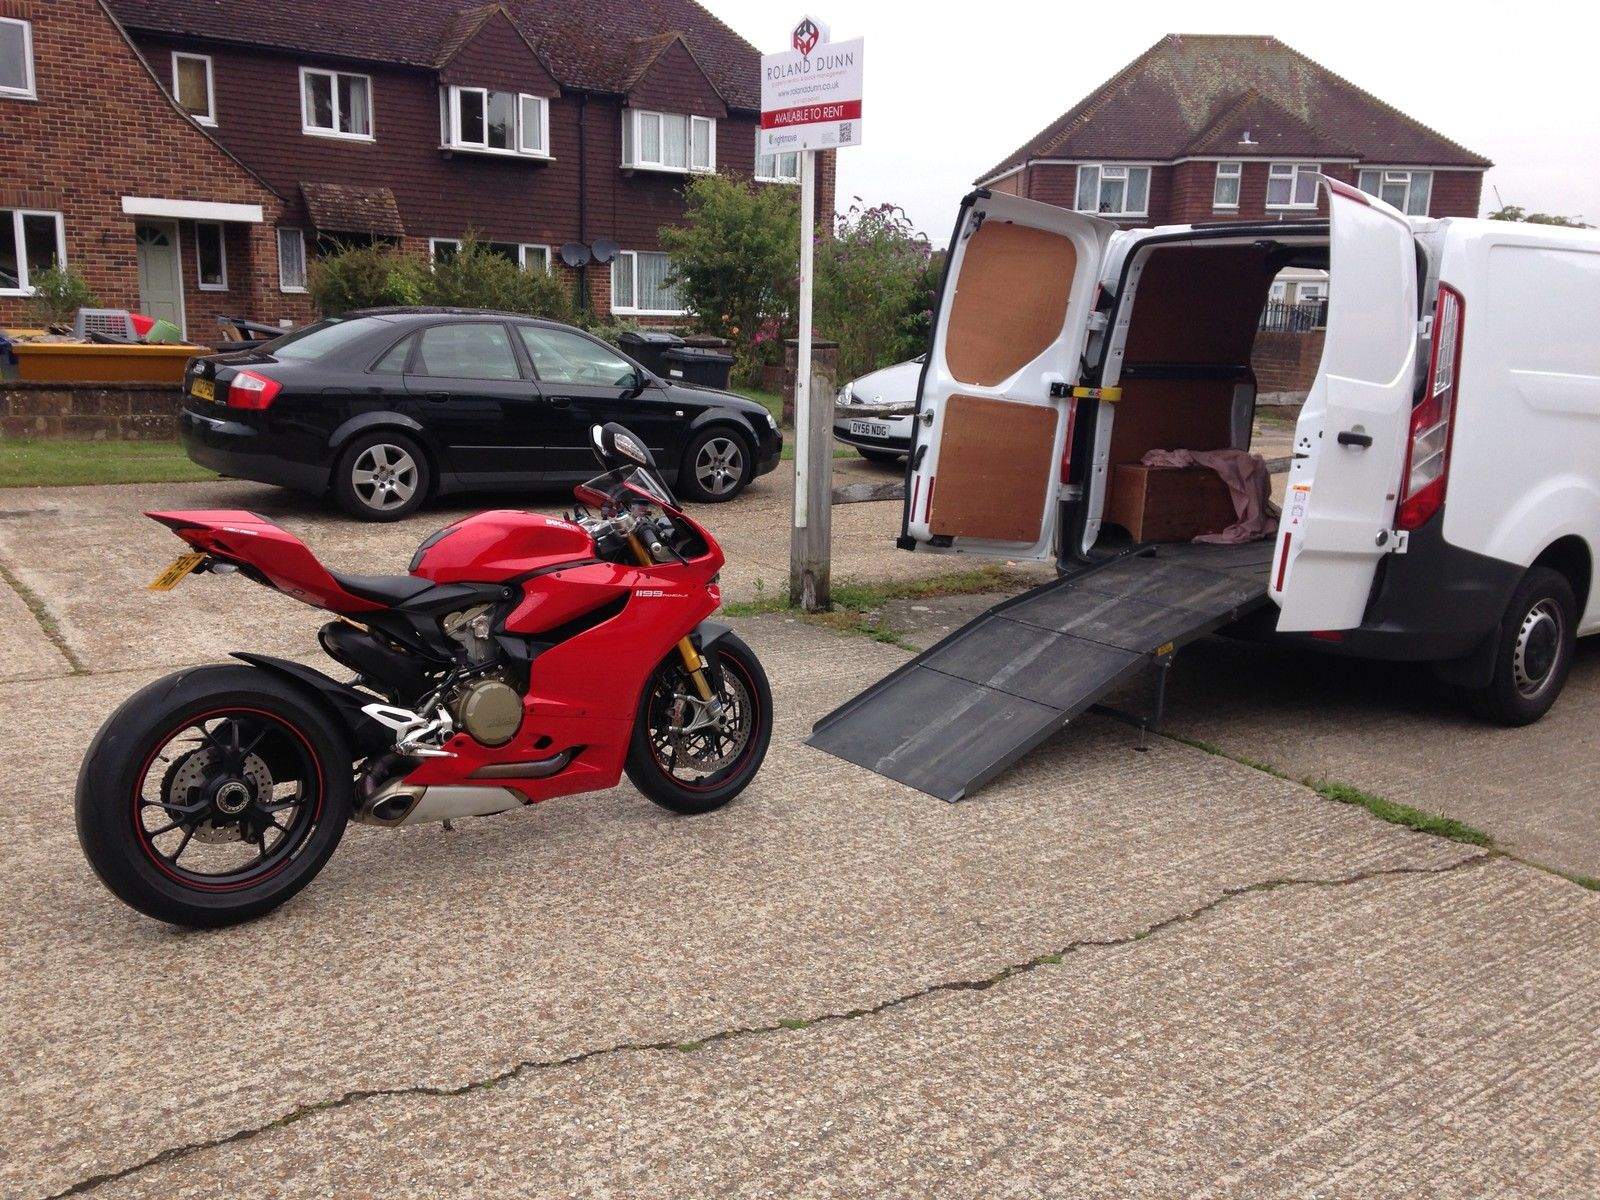 Motorcycle Delivery Service Nationwide Race Track Bike Spares Repair Nationwide